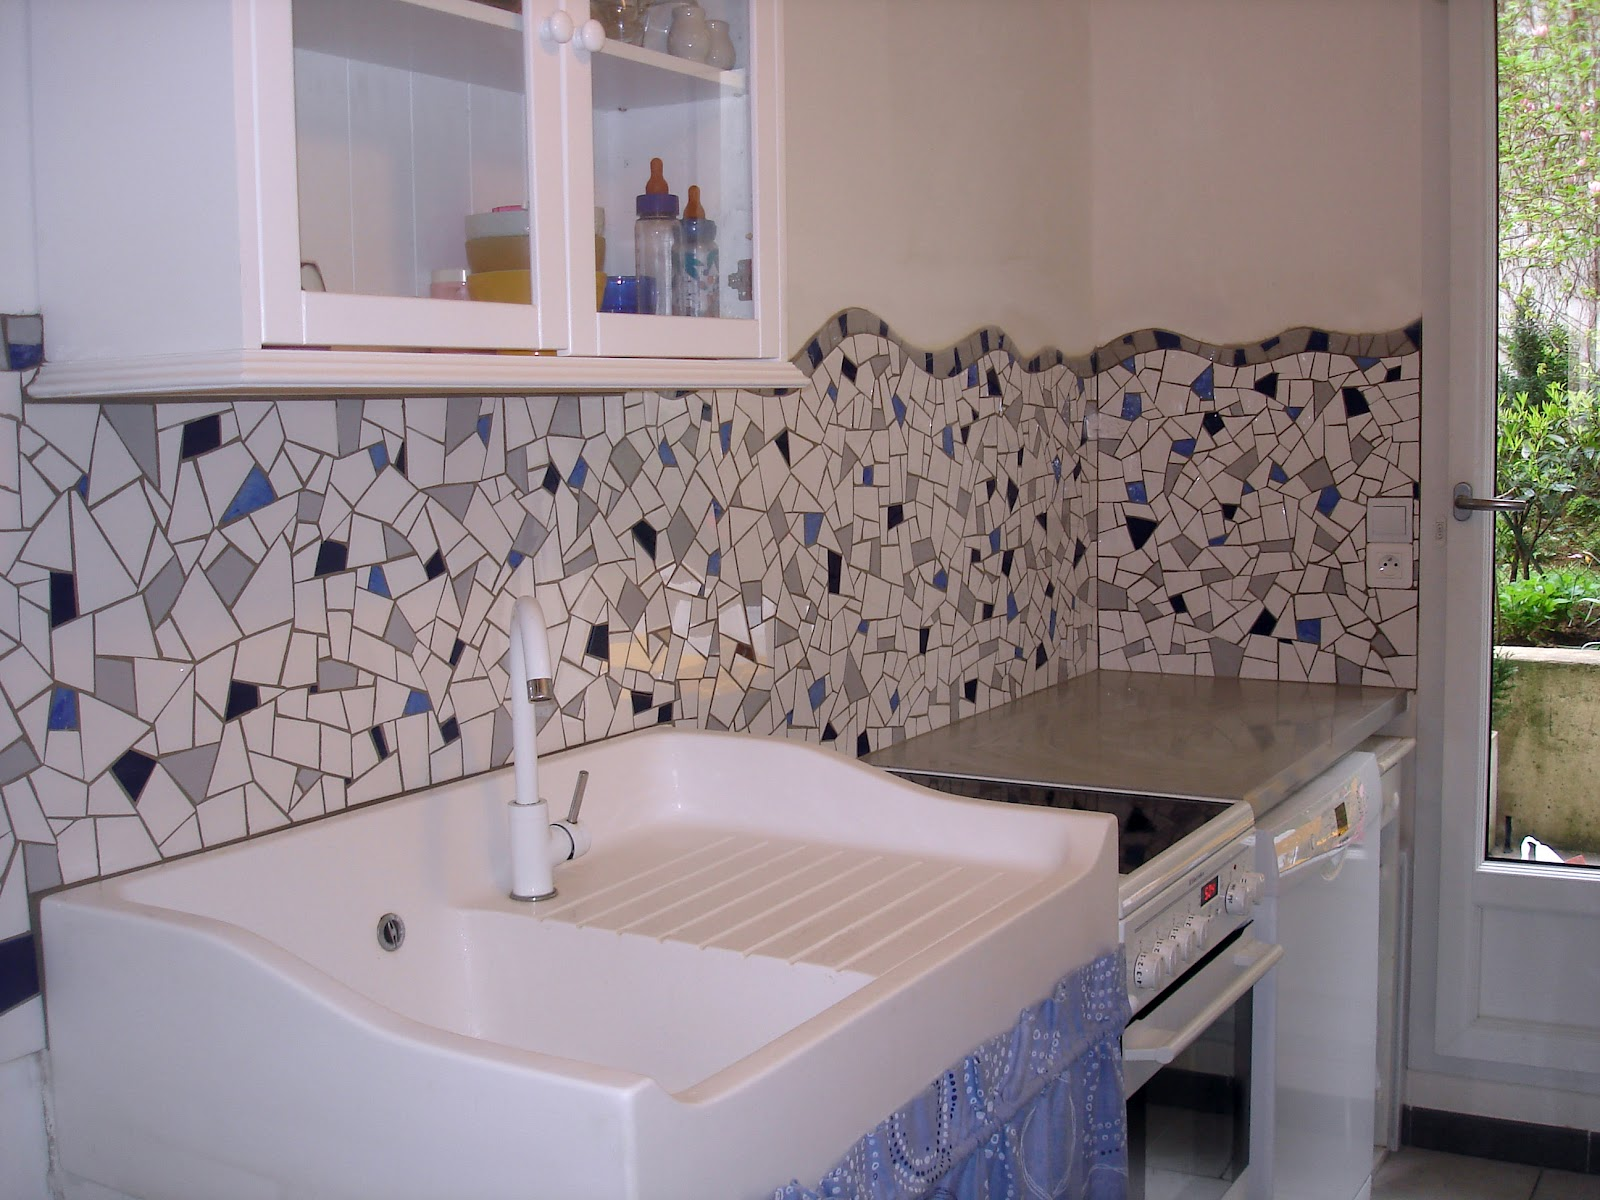 Crdence mosaique cuisine credence grise cuisine blanche marvelous cuisine grise et blanche - Credence mosaique cuisine ...